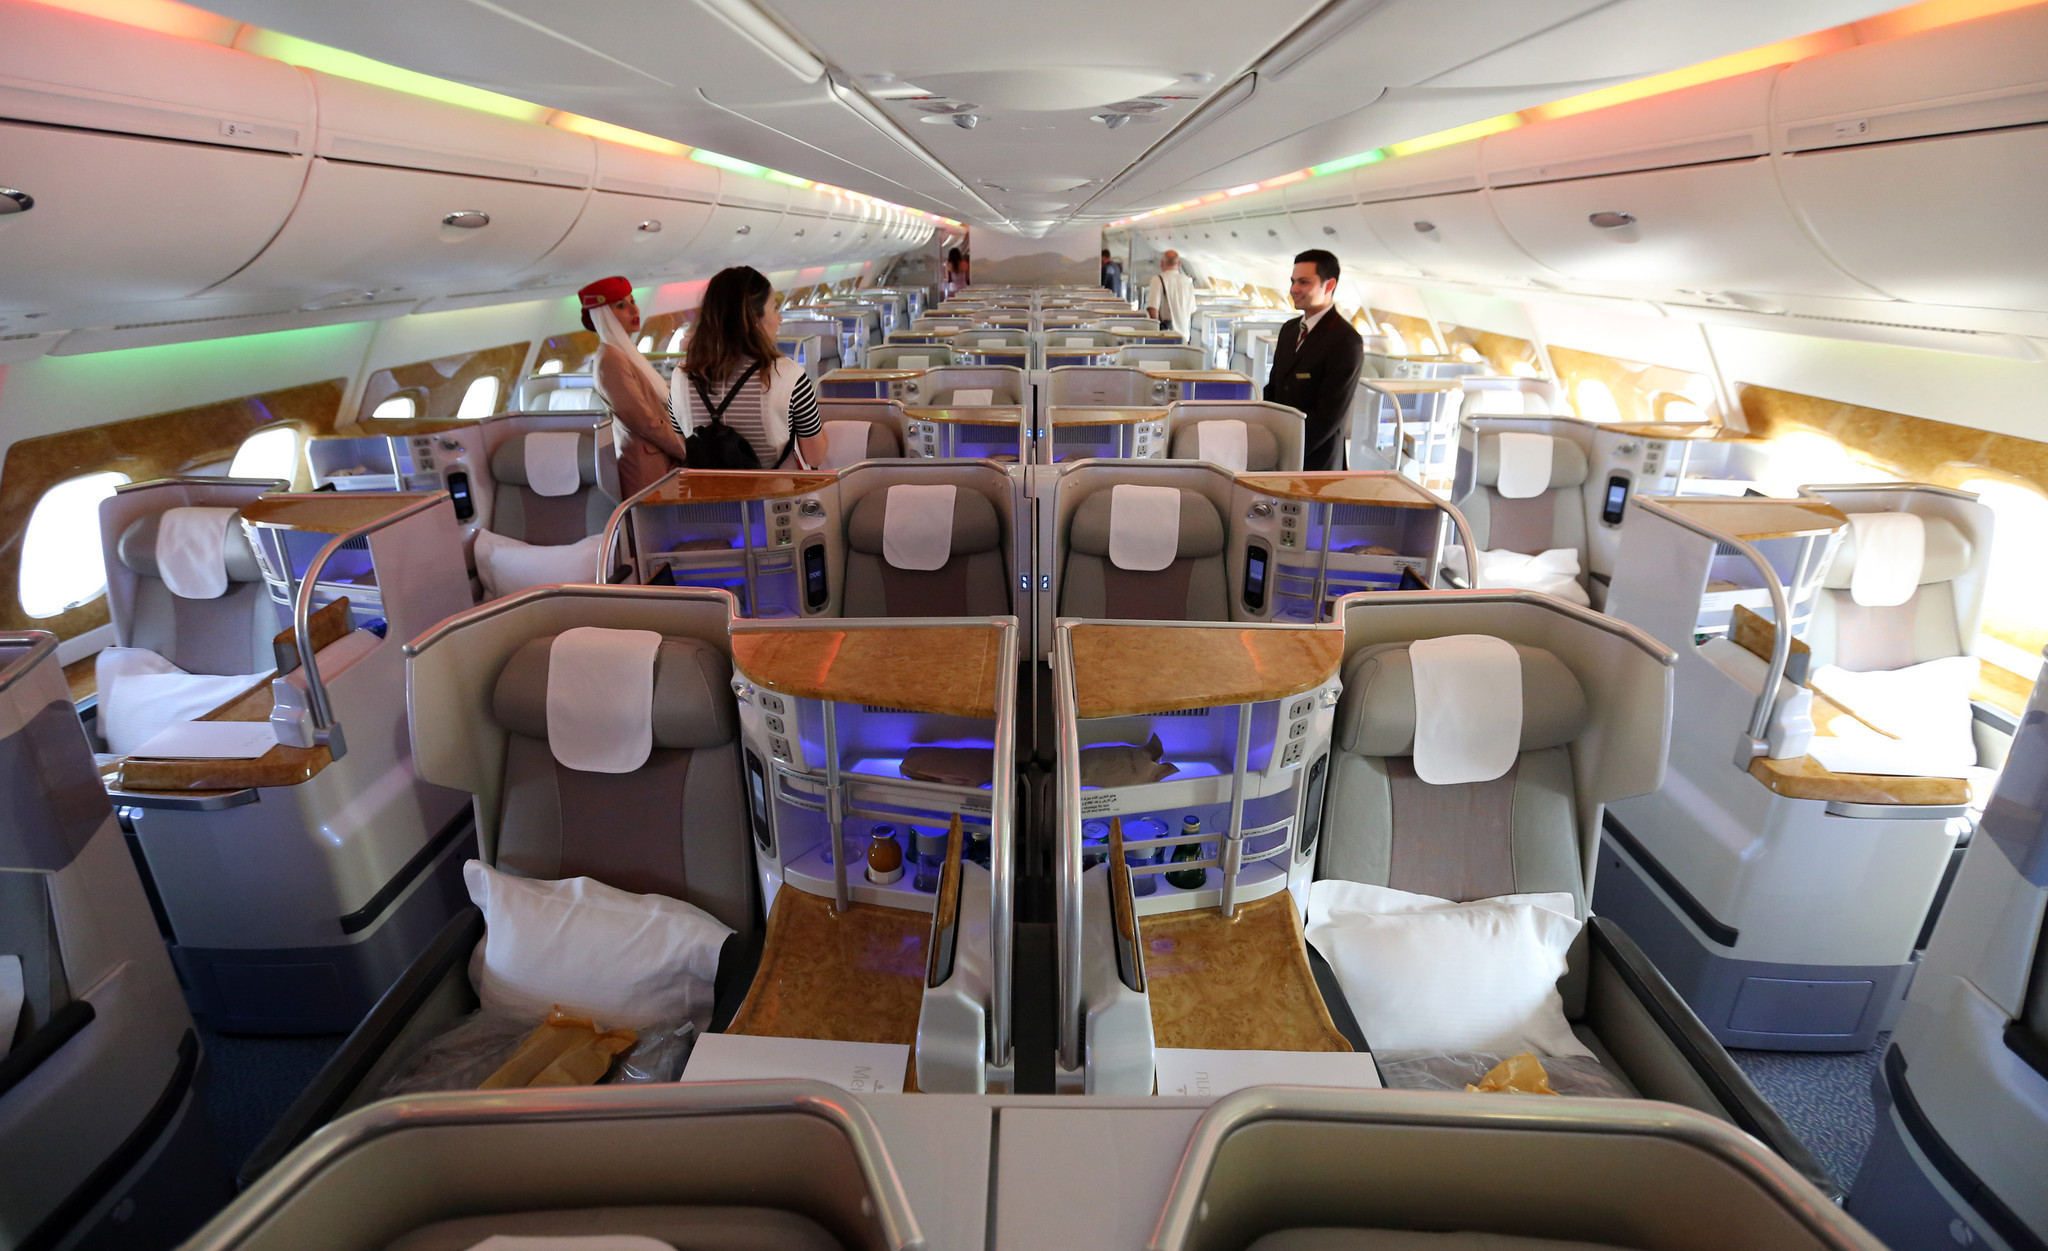 airbus a380 story Airbus a380 eastern arsenal  billionaire buys himself an a380 by gregory  mone technology  airbus a380 the biggest airliner ever built takes flight.